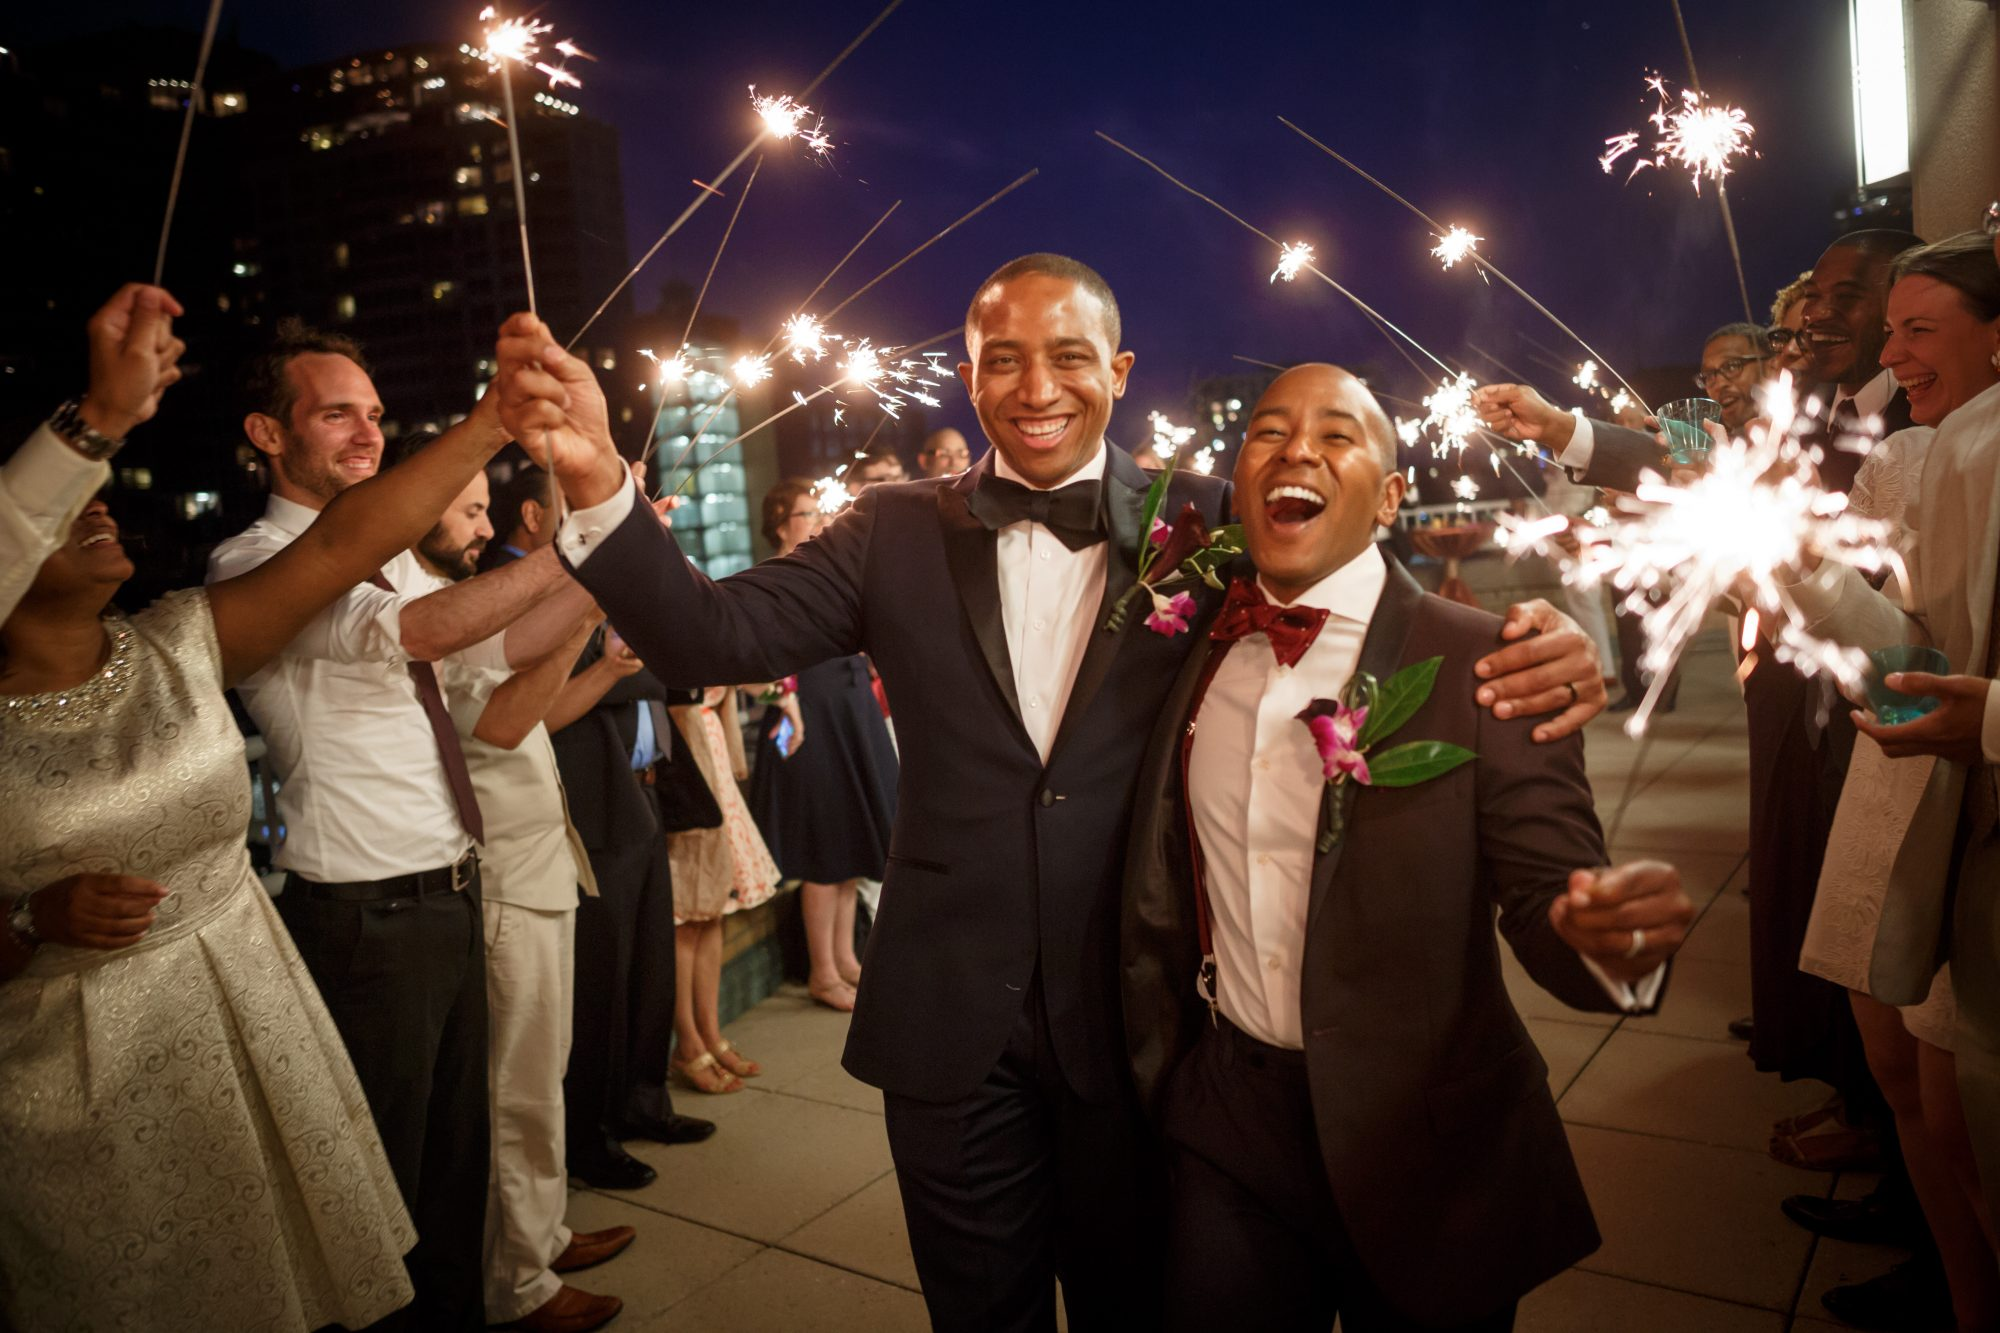 These delighted grooms lit up the night as they exited their wedding, with both their smiles and their sparklers.